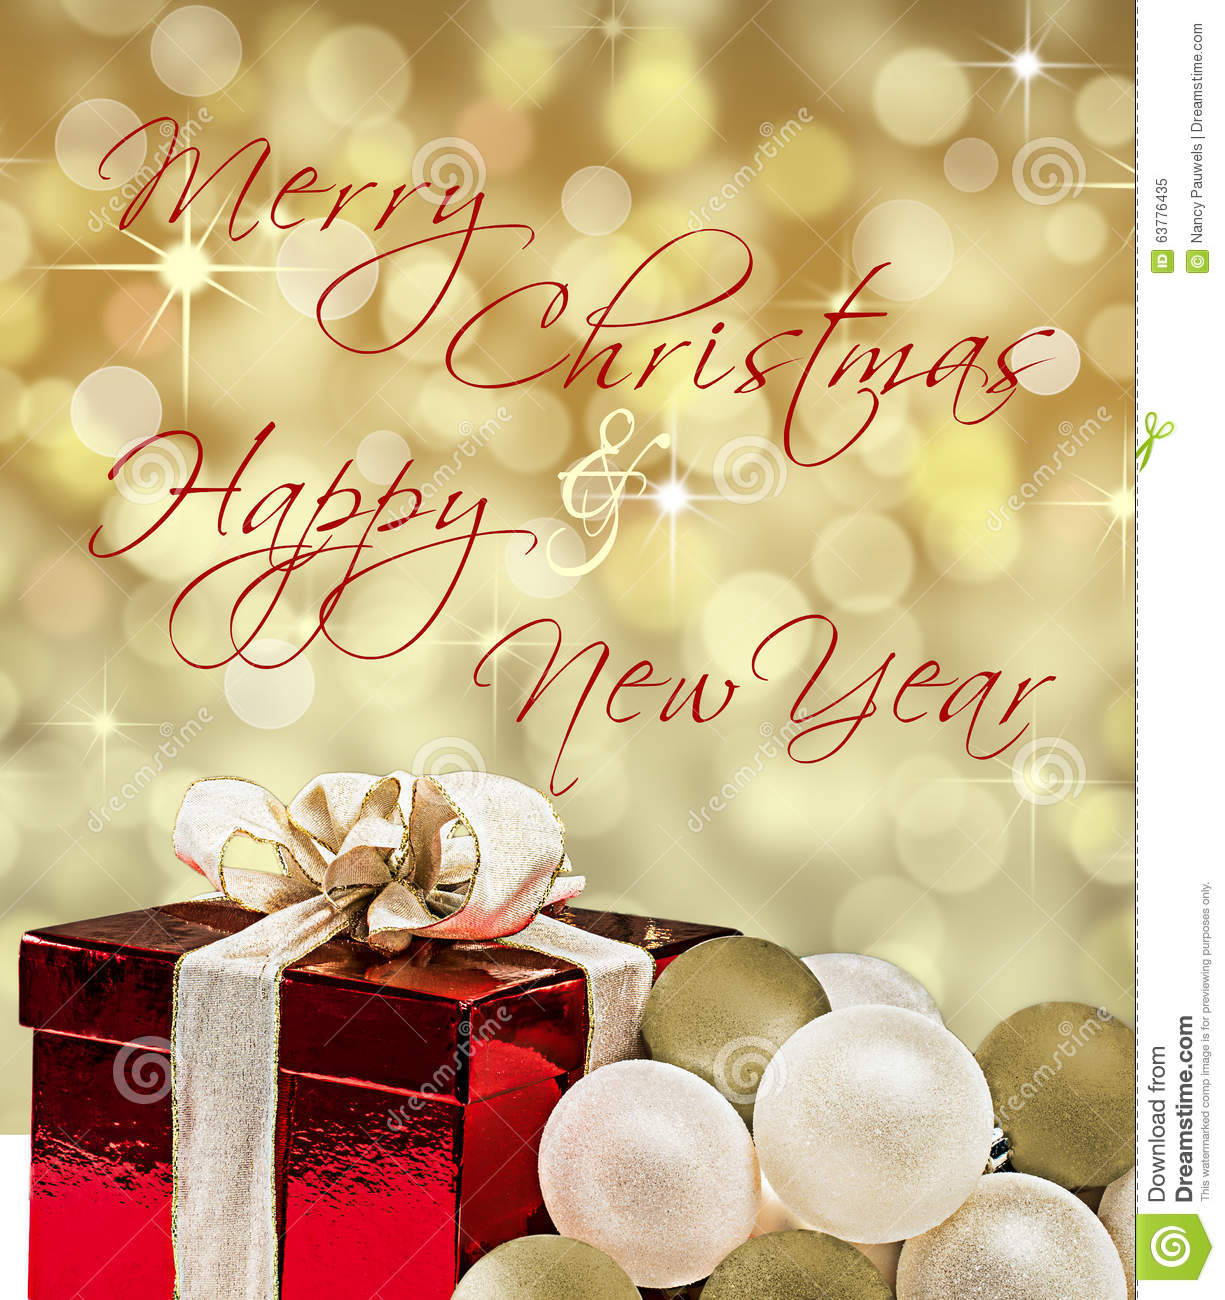 Christmas New Years Card With Text And Gift Box Stock Image